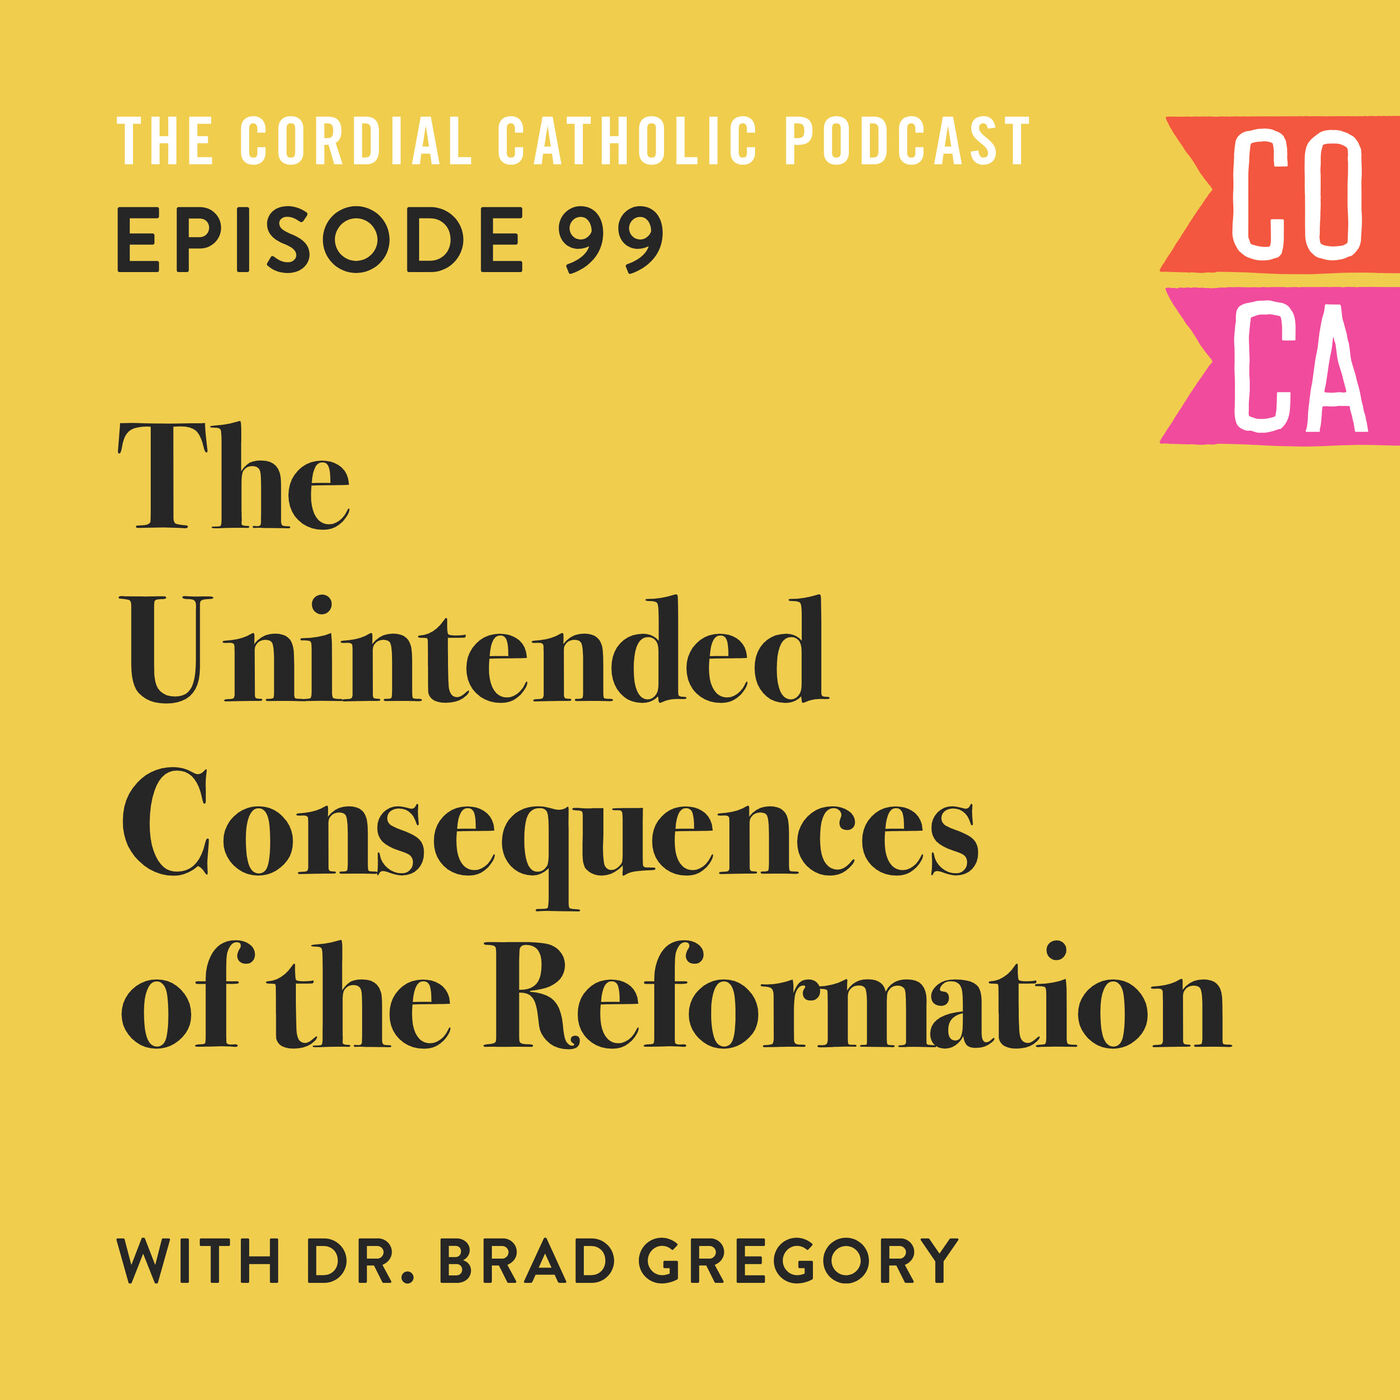 099: The Unintended Consequences of the Reformation (w/ Dr. Brad Gregory)